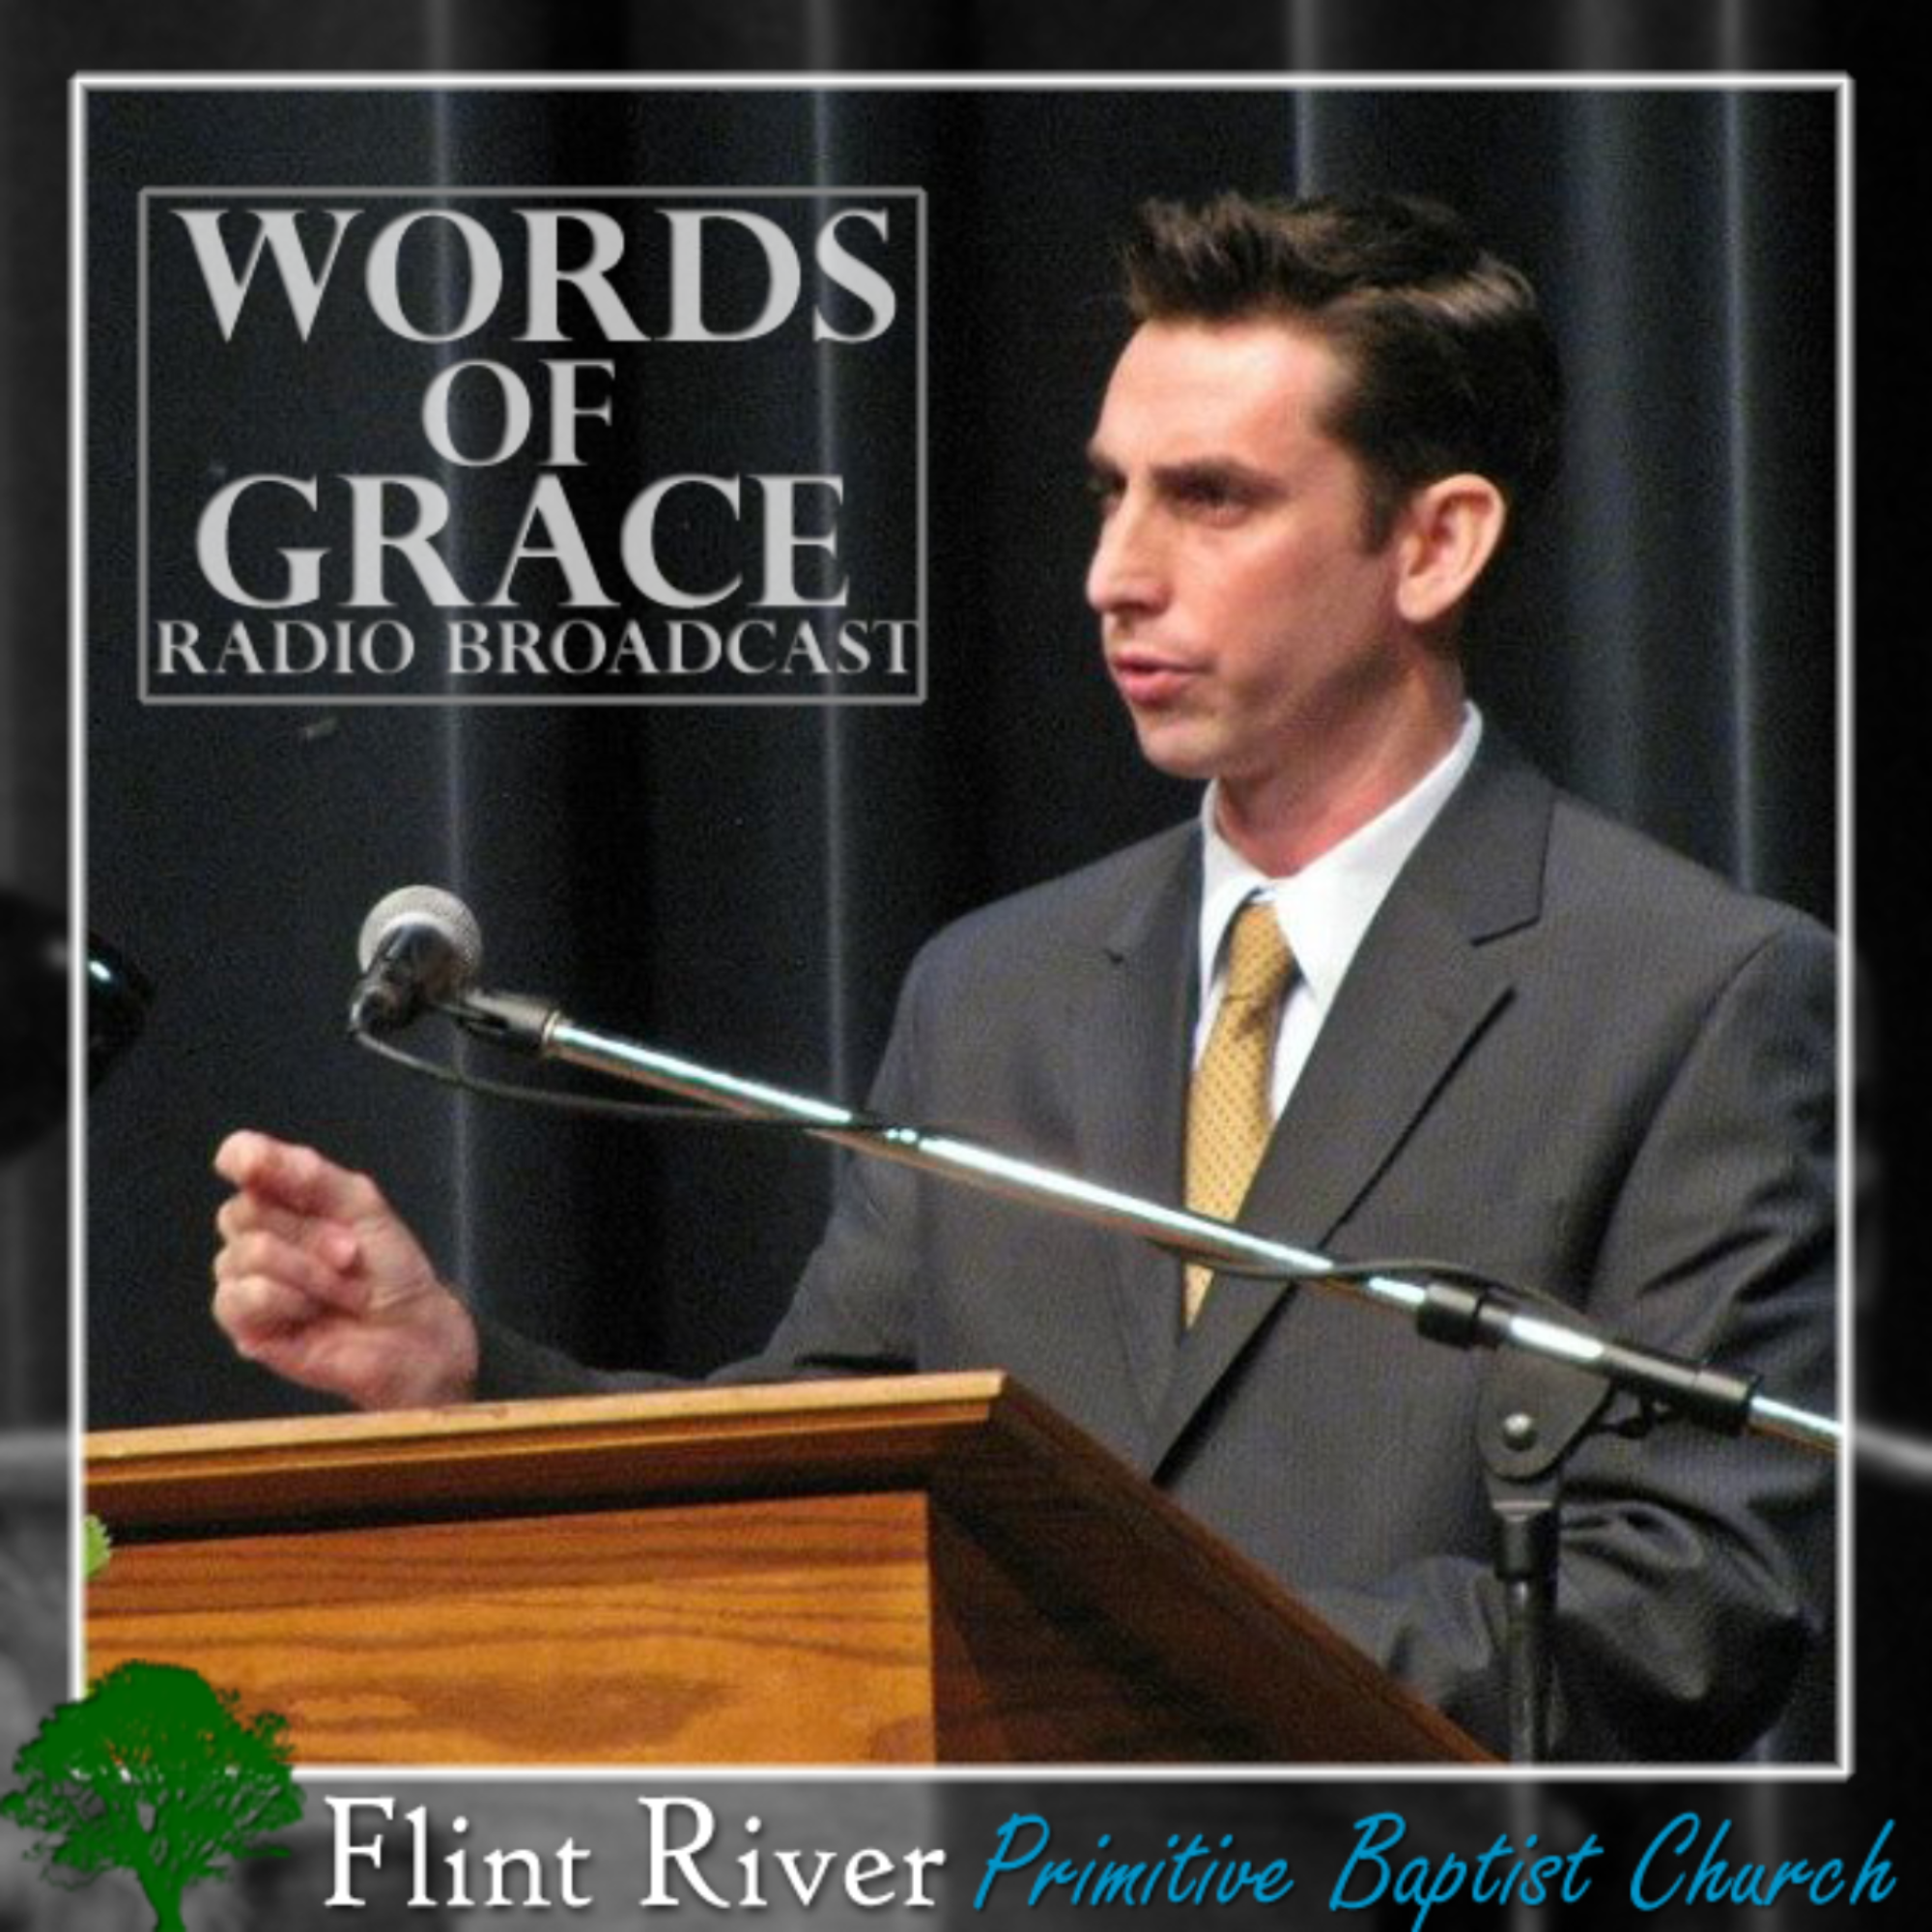 Words of Grace Radio - Flint River Primitive Baptist Church